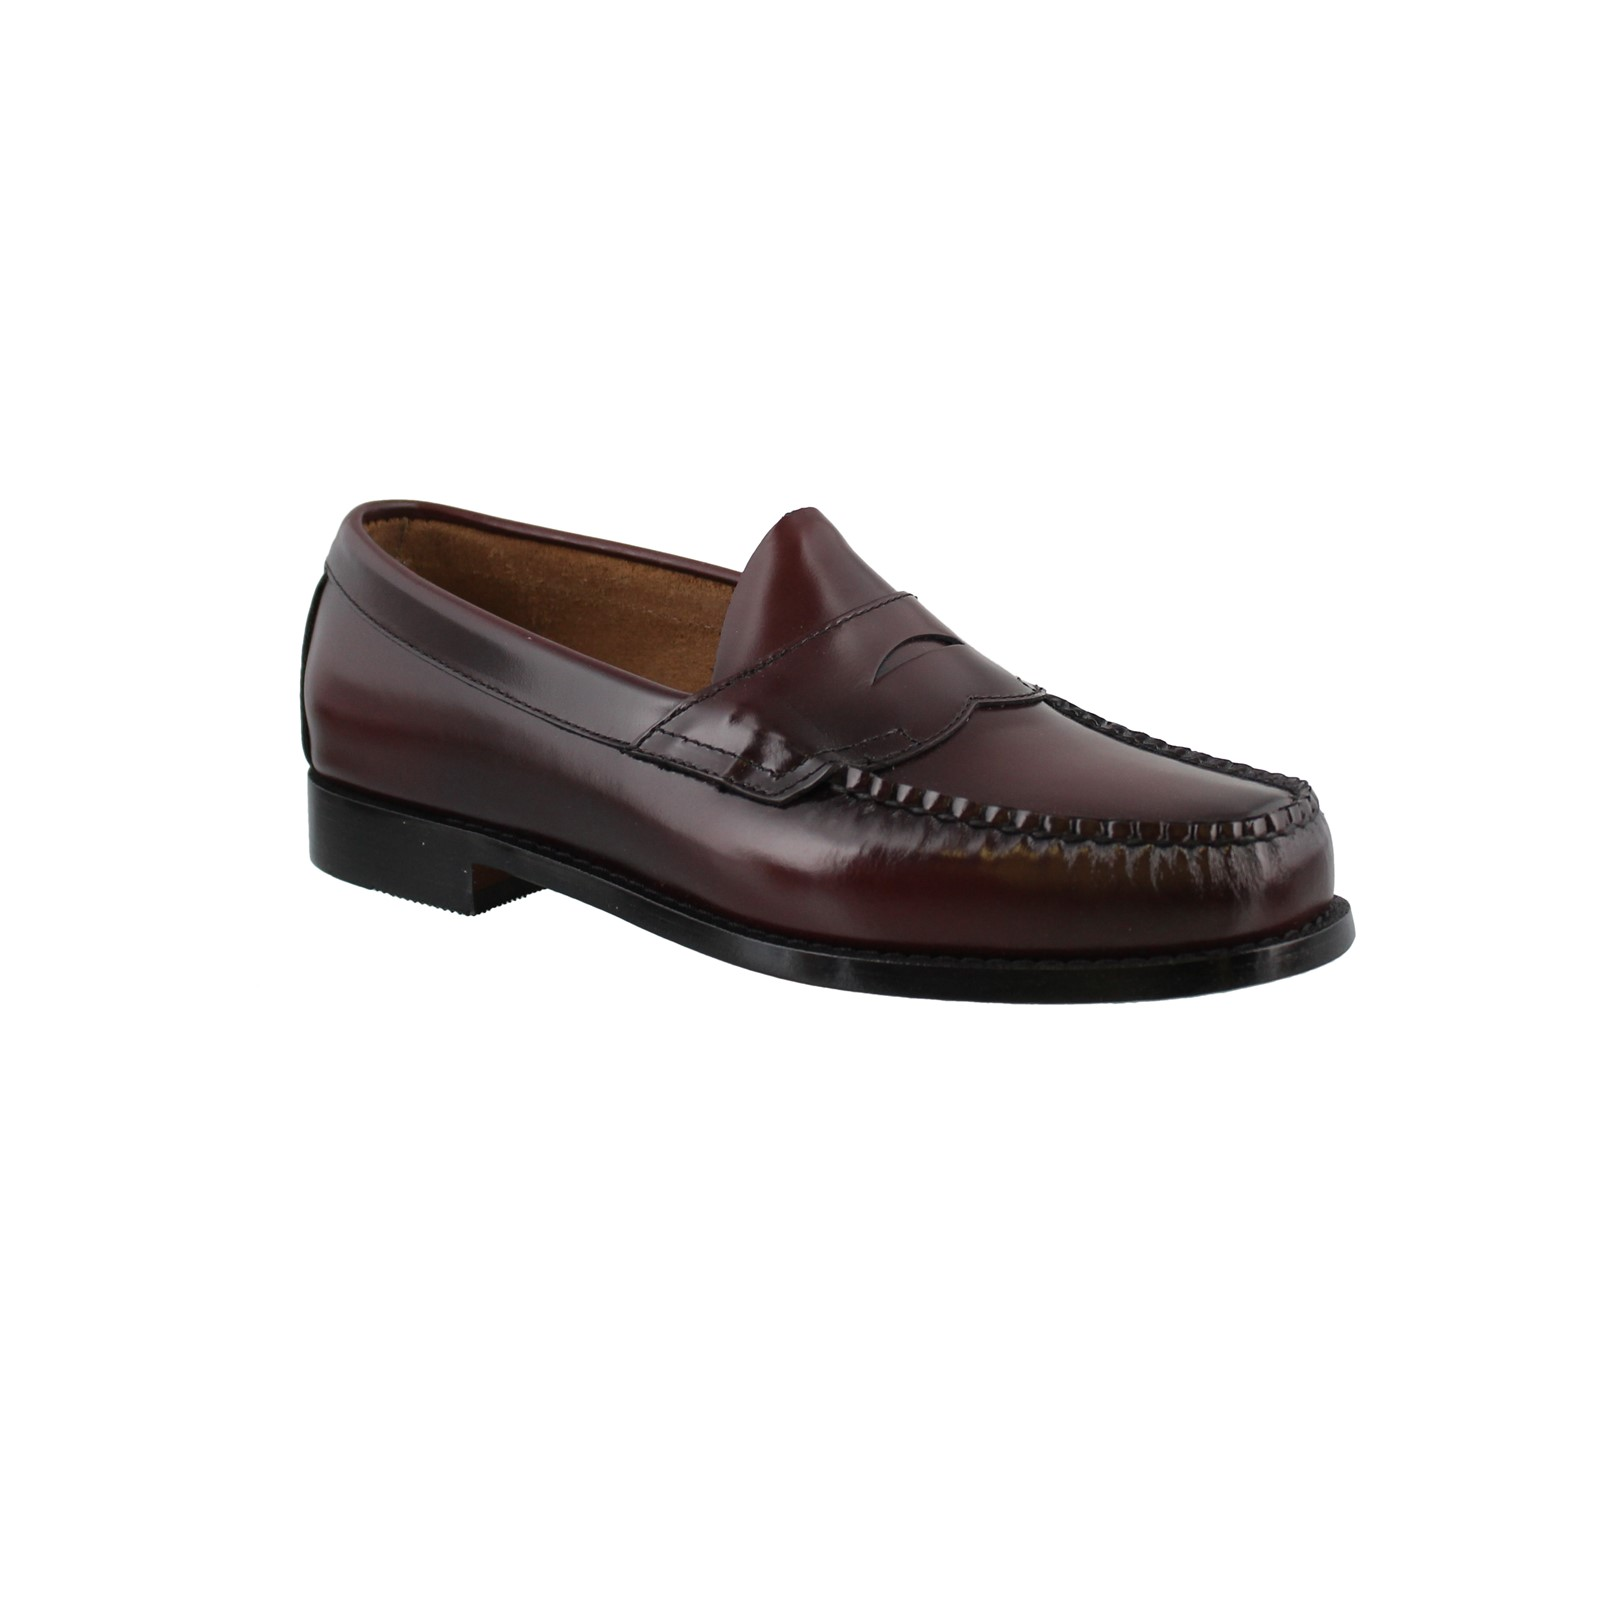 Bass Leather Shoes Logan Burgundy Penny Loafer 70-10949 Men Weejuns G.H